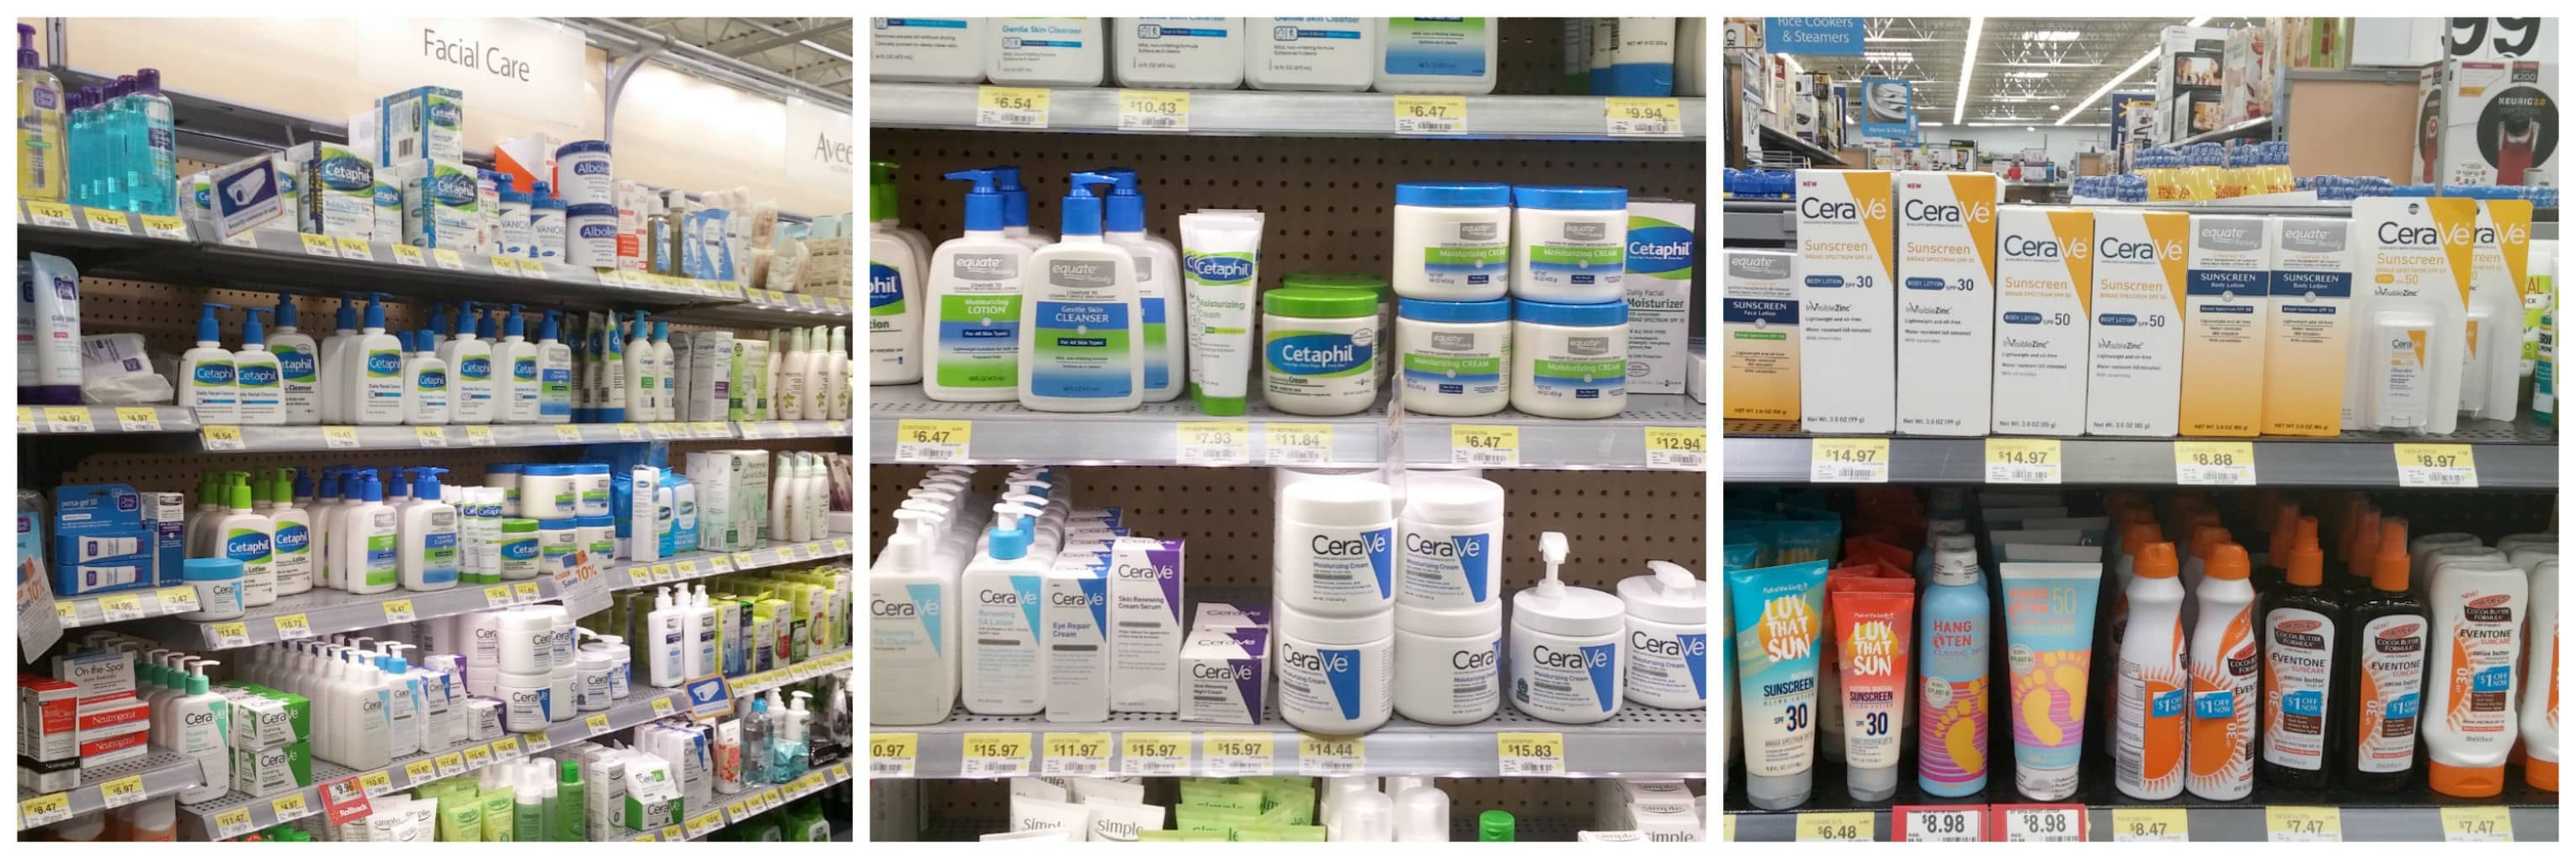 CeraVe Available at Walmart